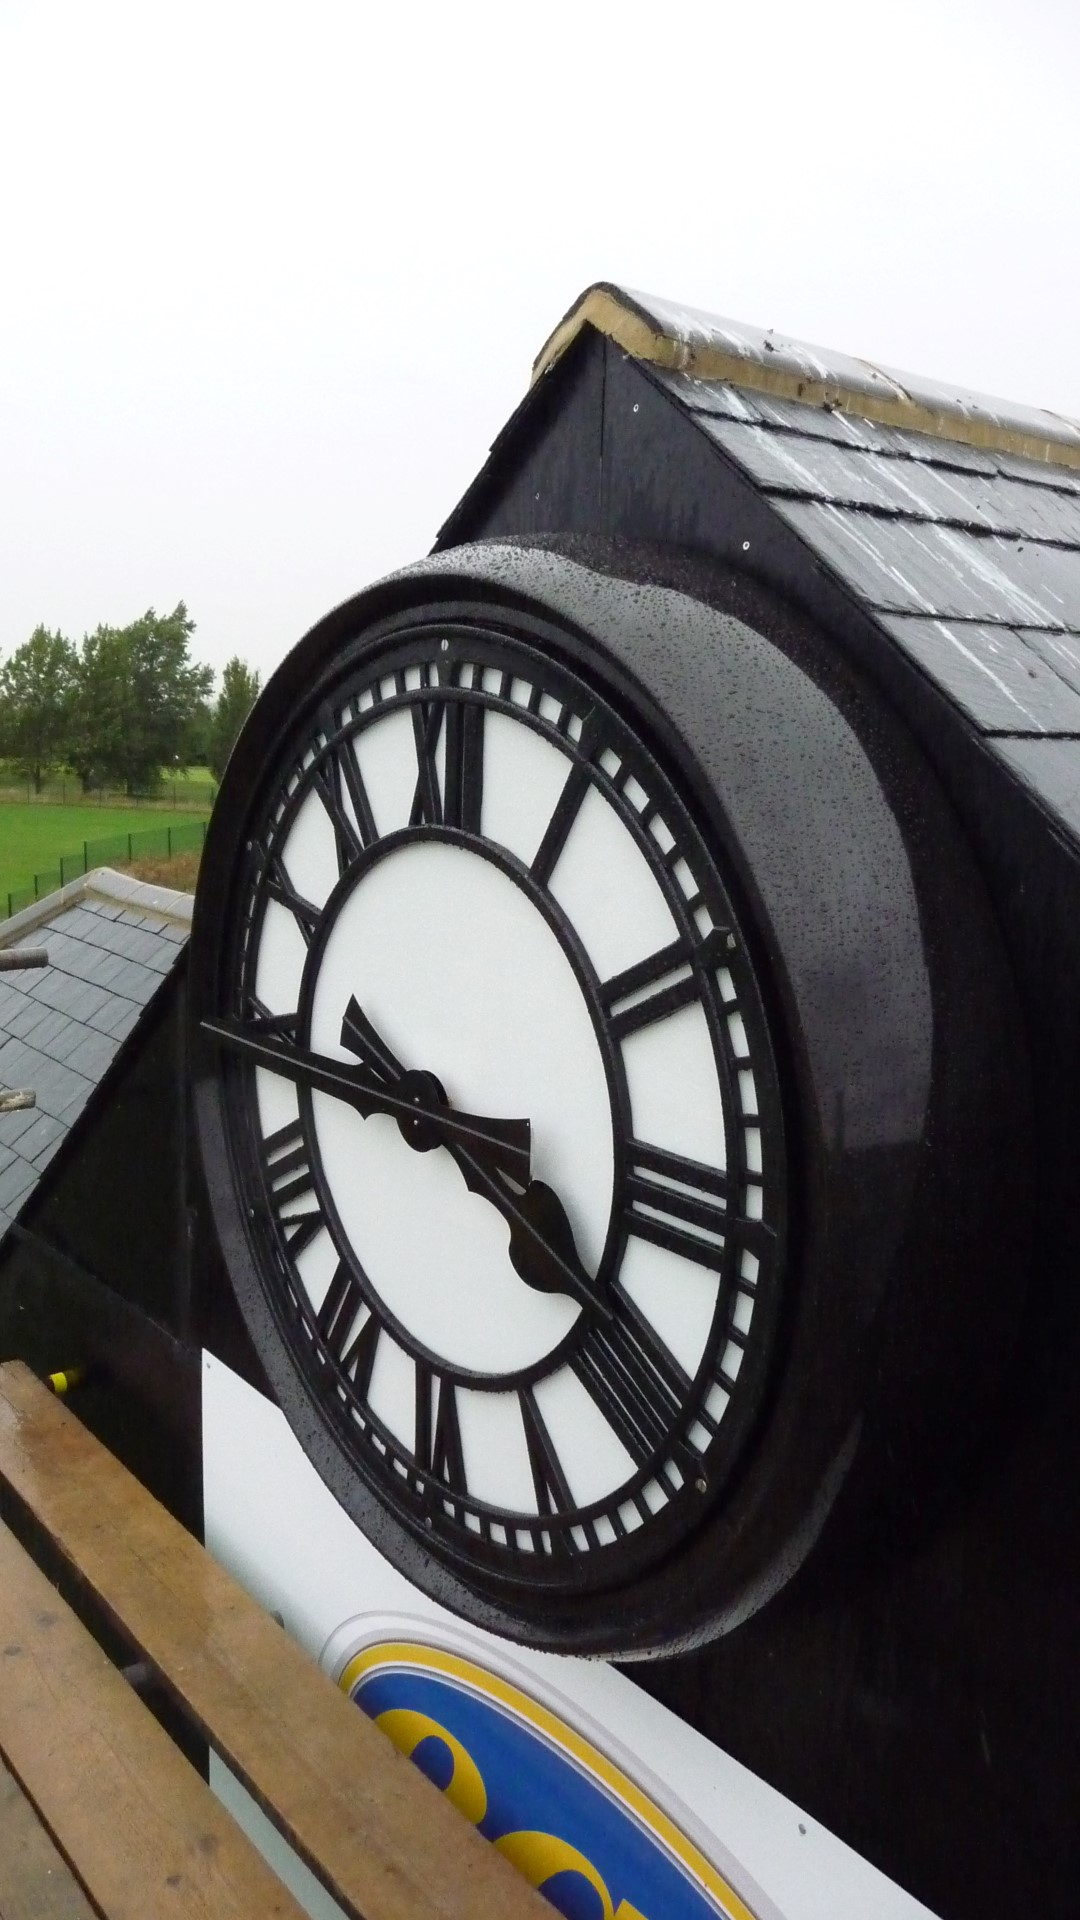 Garon Park Cricket Club Clock